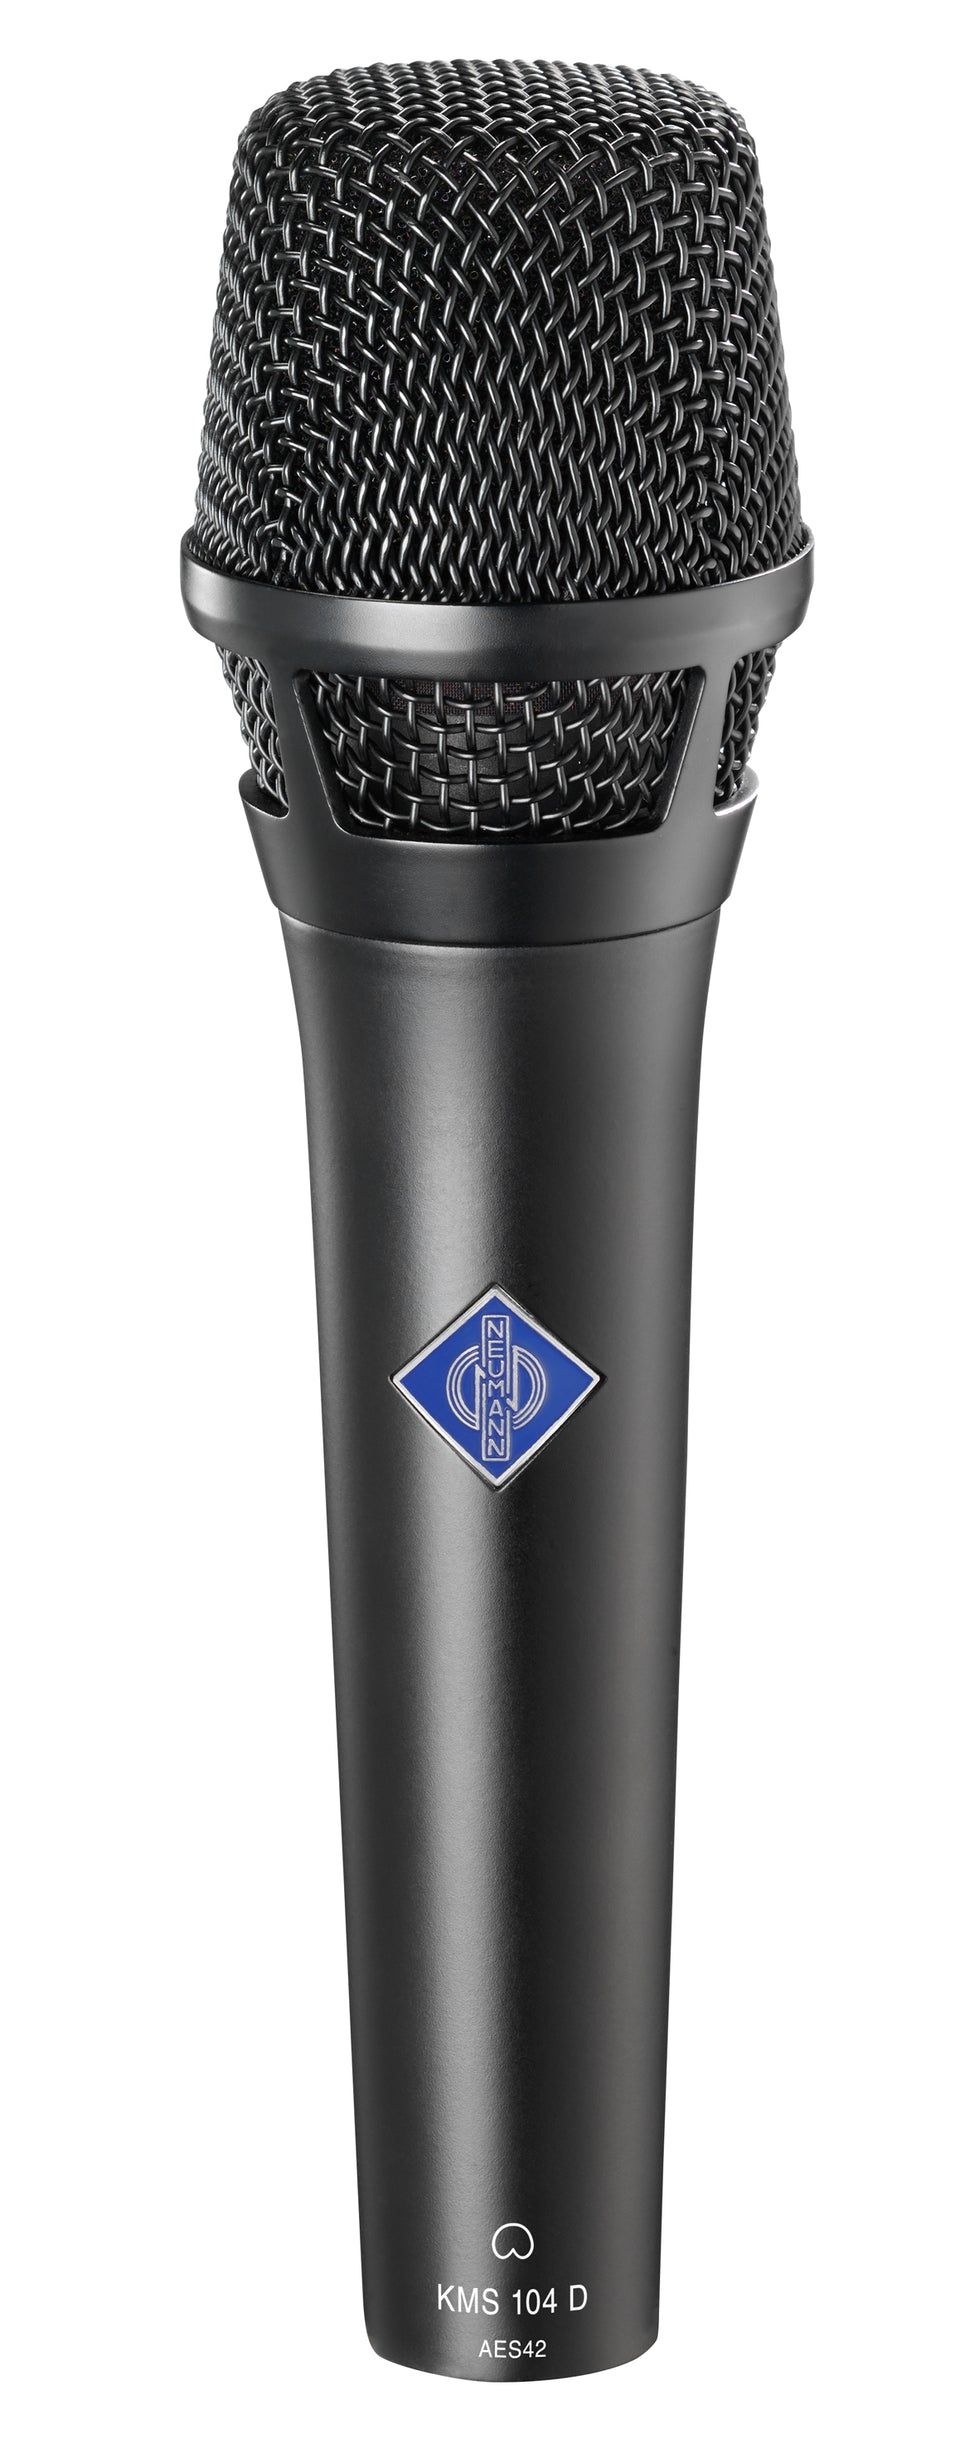 Neumann KMS 104 D Cardioid Microphone W/ KMS Pouch and SG105 - Black